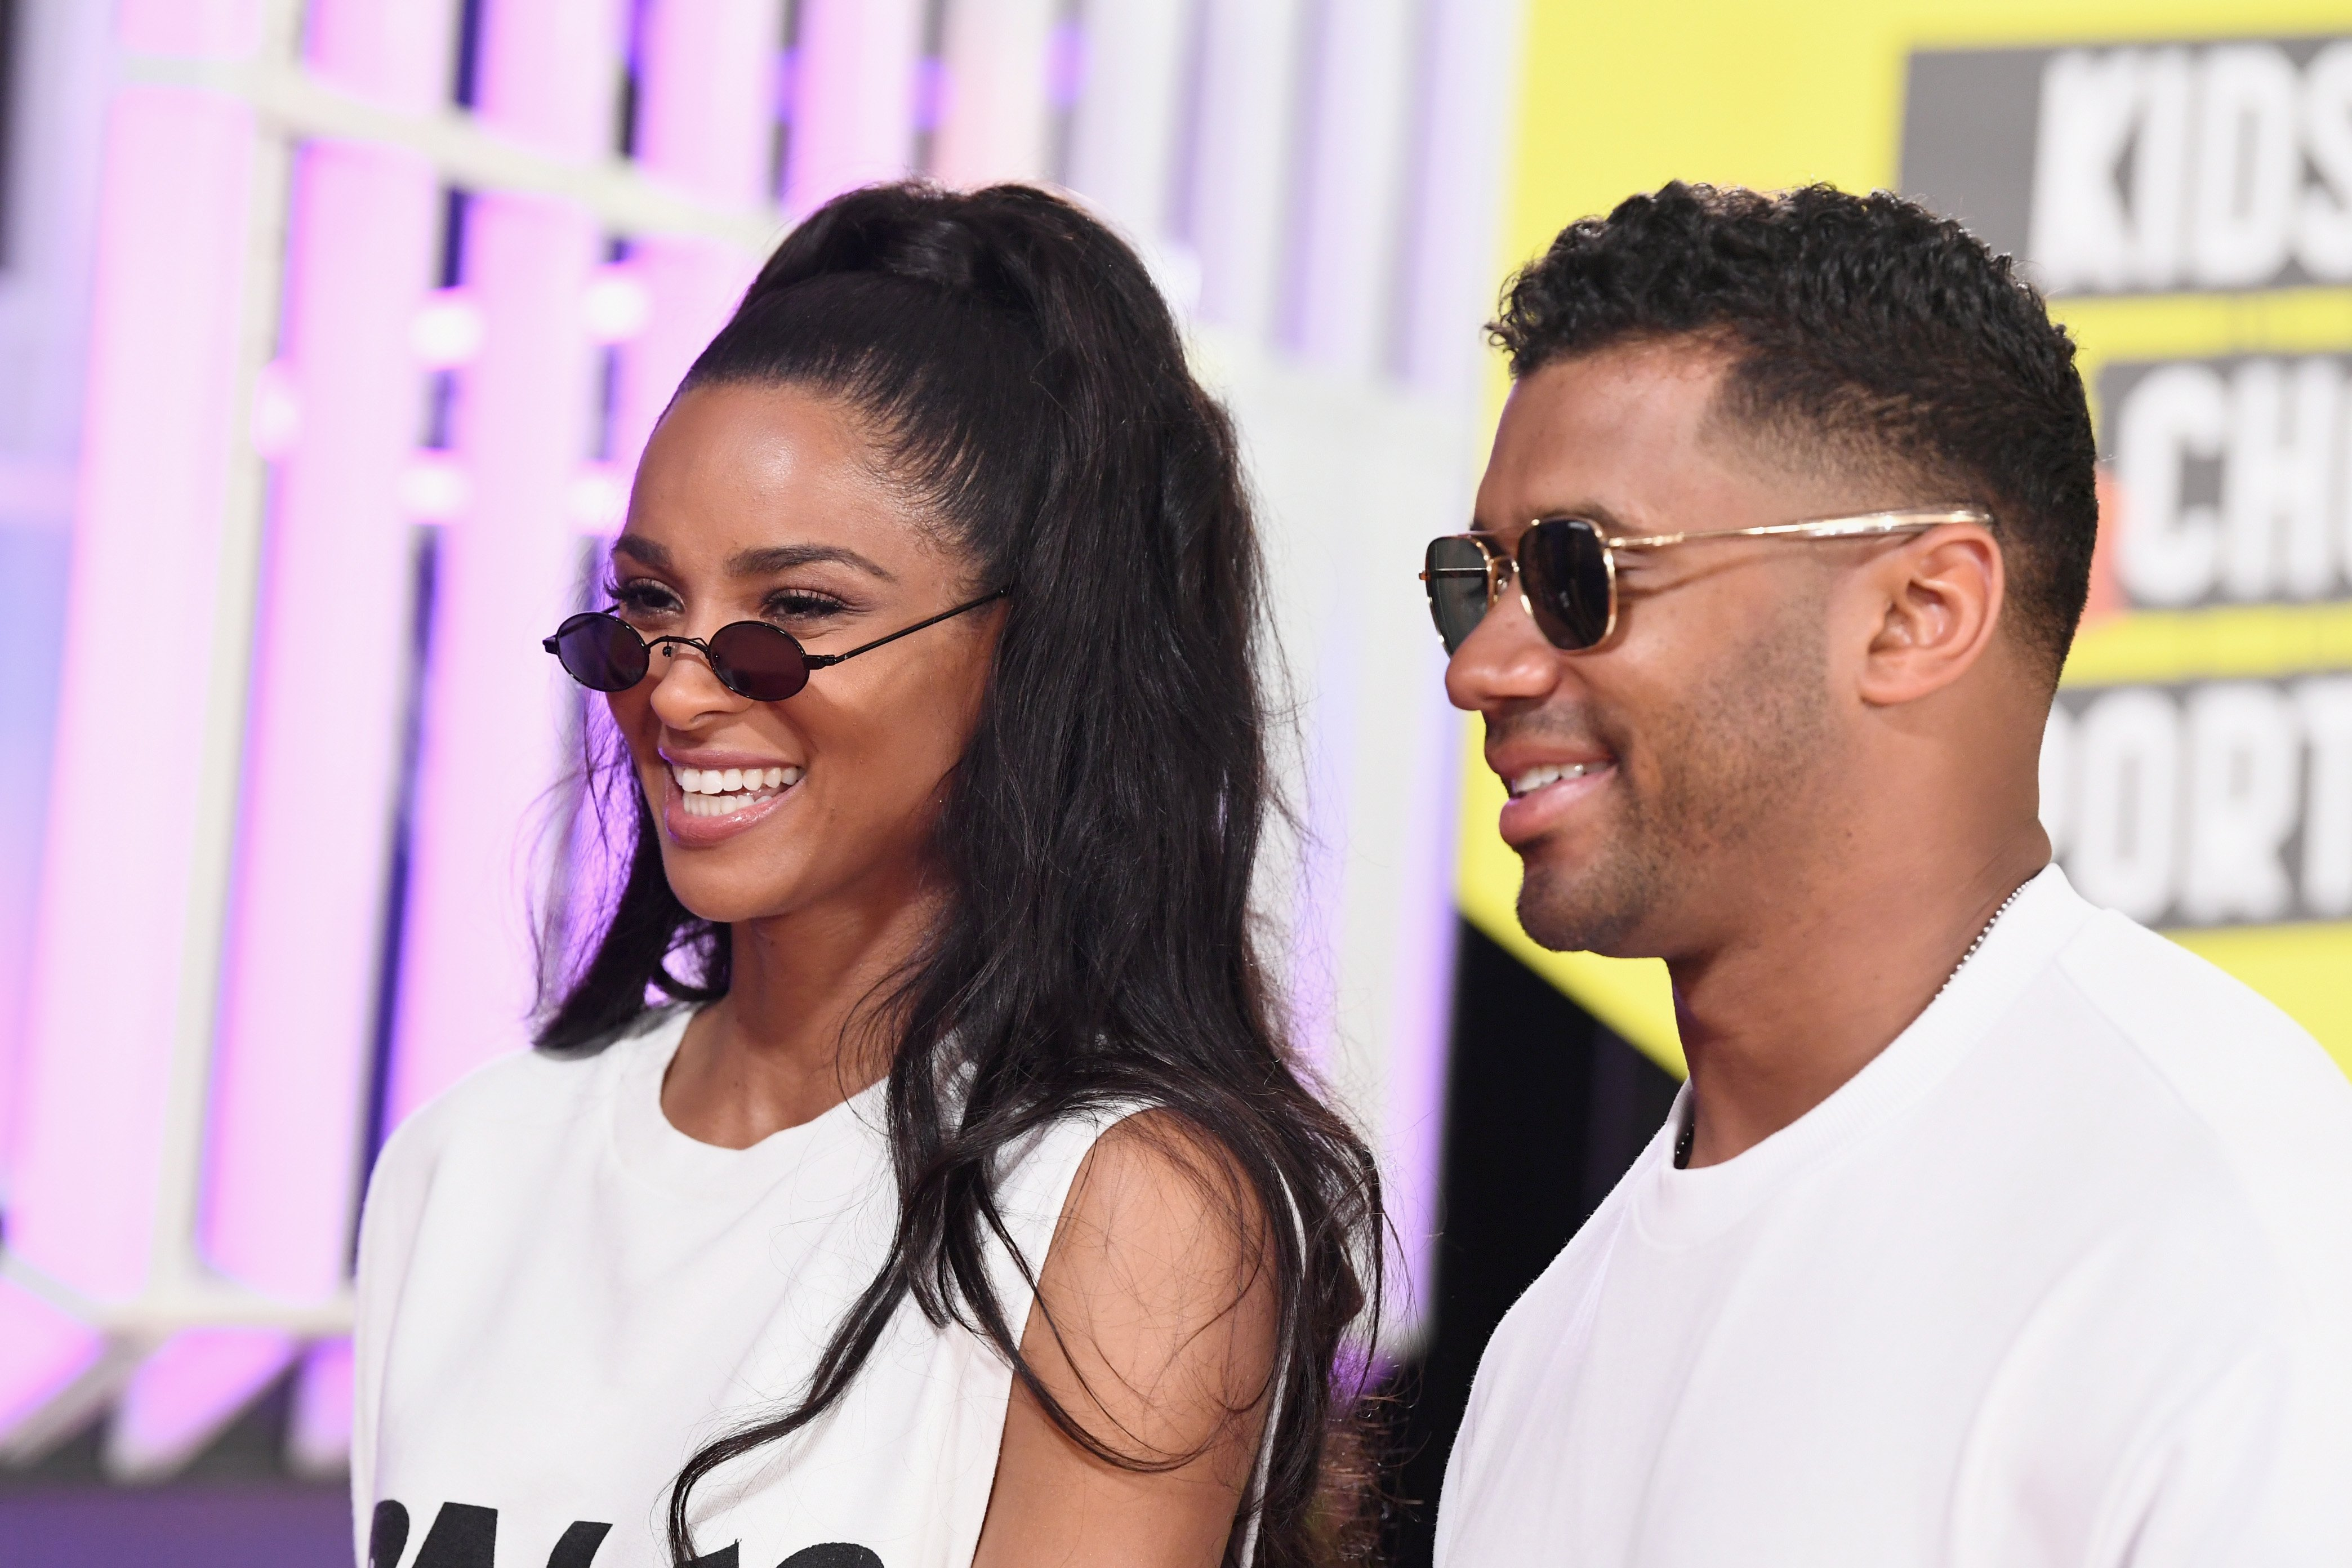 Ciara and Russell Wilson at the Nickelodeon Kids' Choice Sports 2018 at Barker Hangar on July 19, 2018 in Santa Monica, California | Photo: Getty Images